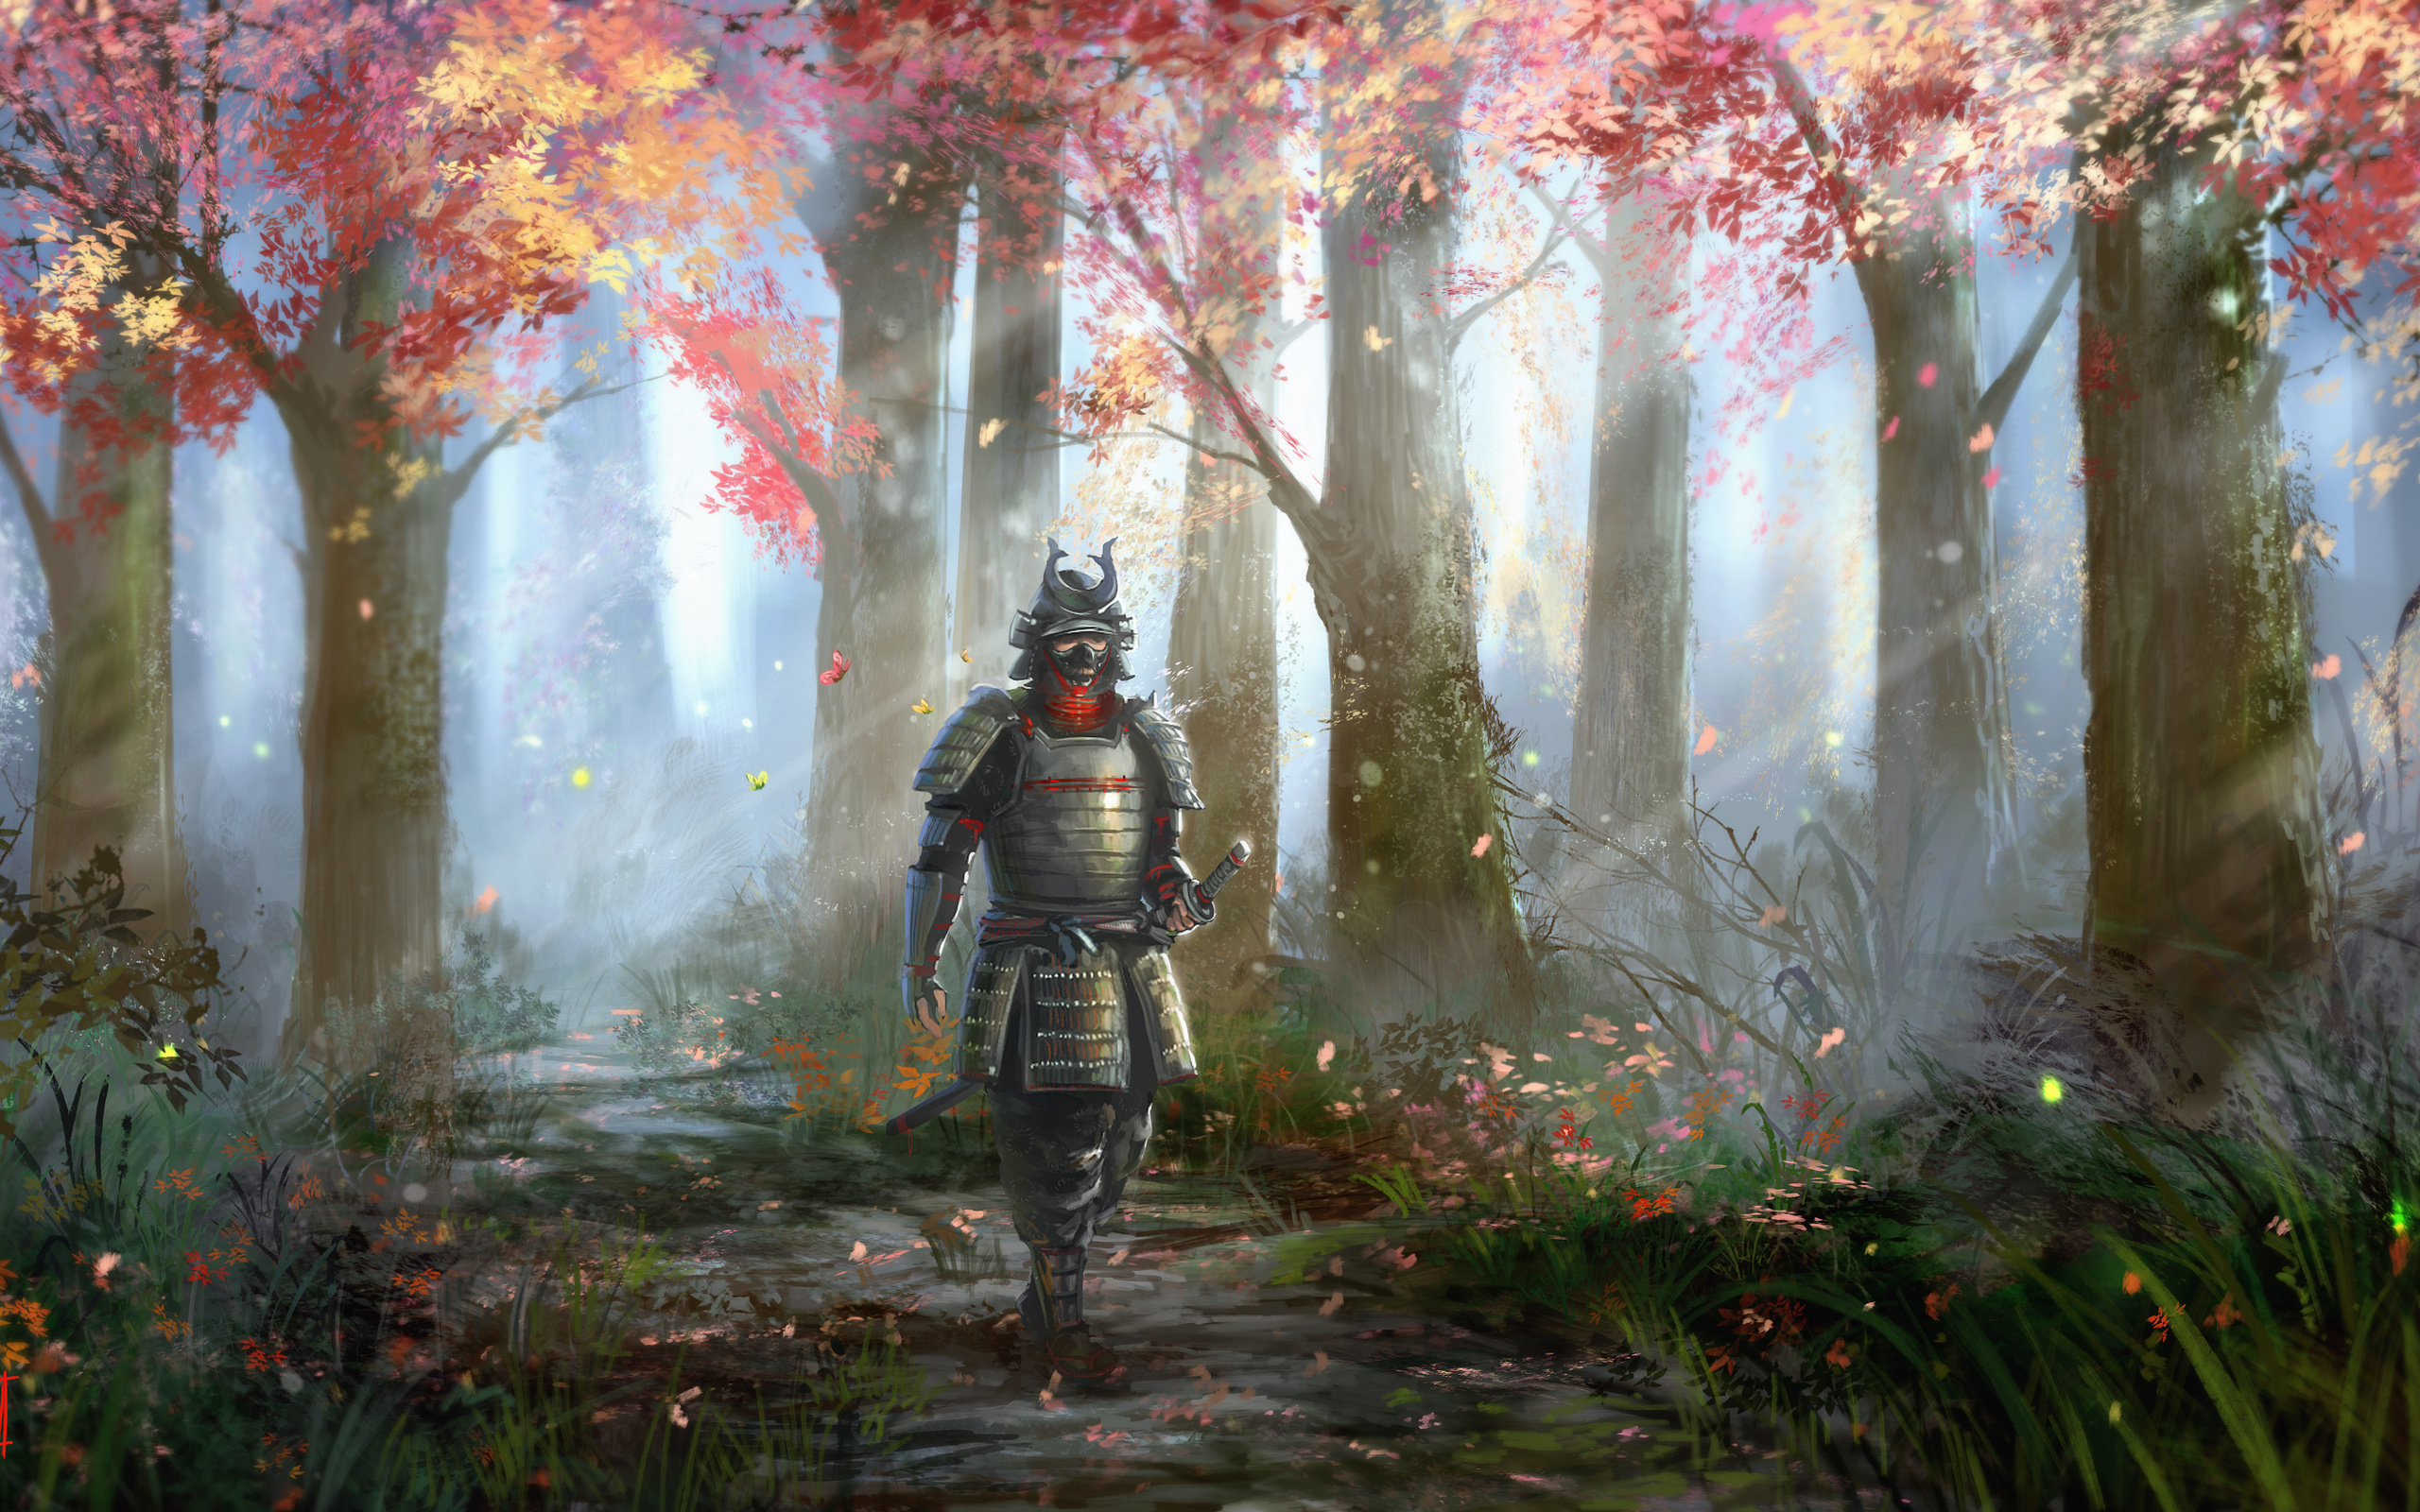 Free Download Samurai Hd Wallpaper Background Image